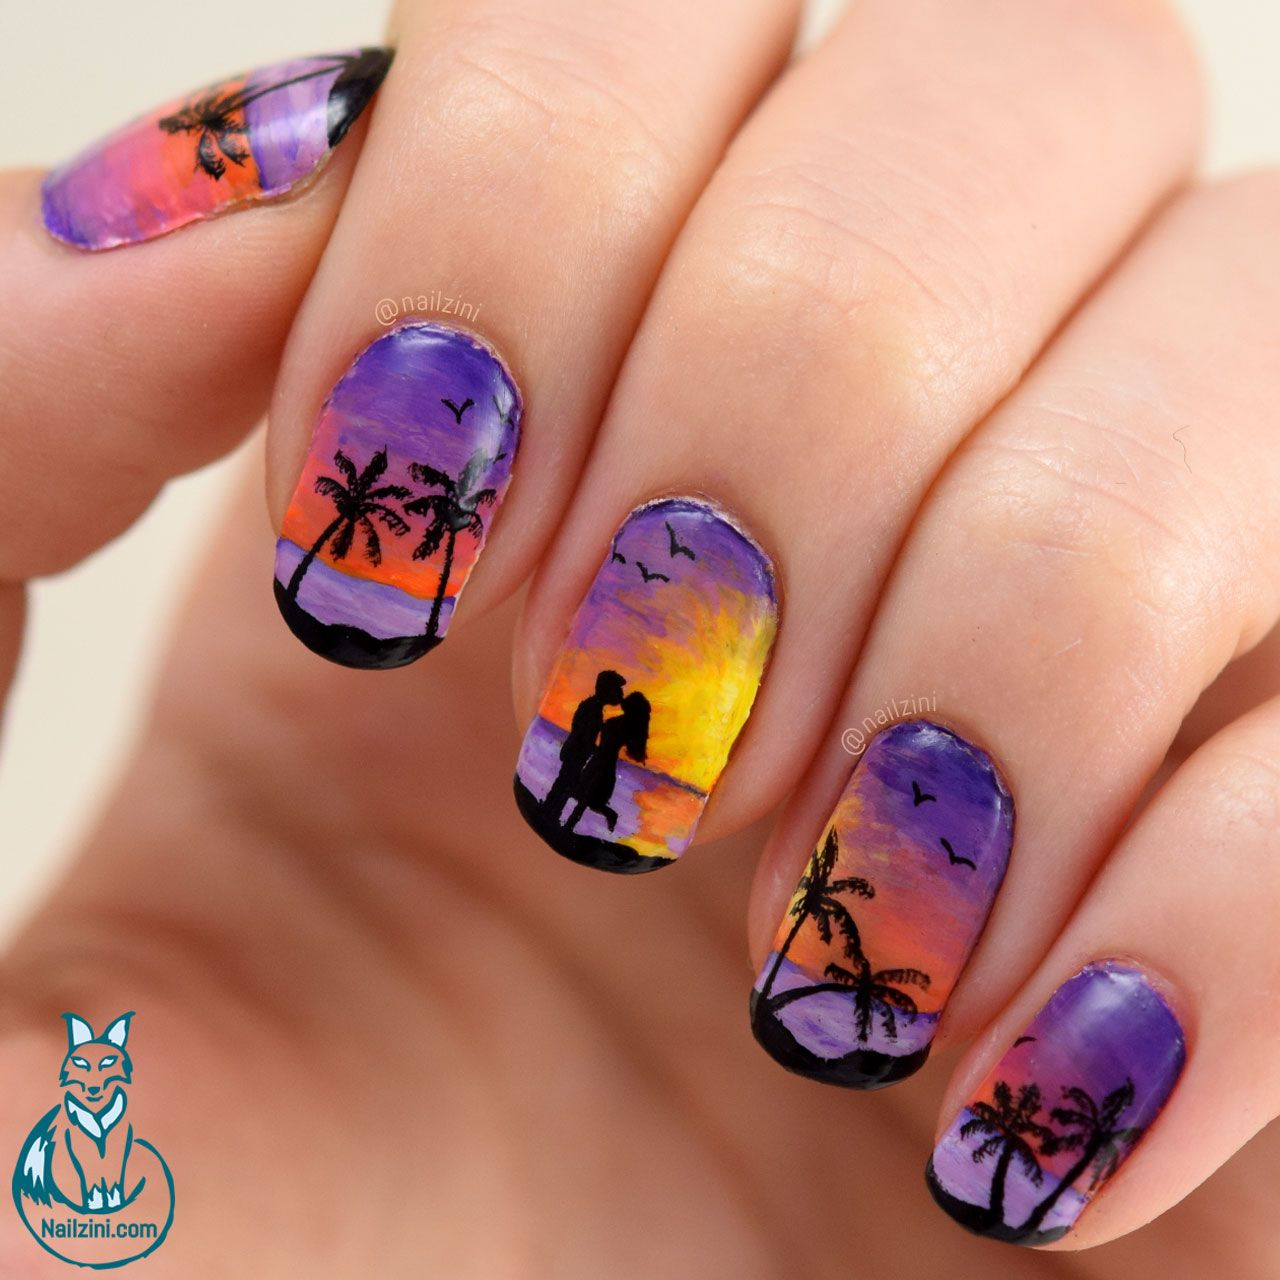 Nailzini: A Nail Art Blog: Lovers Beach Sunset Valentine Nail Art ...